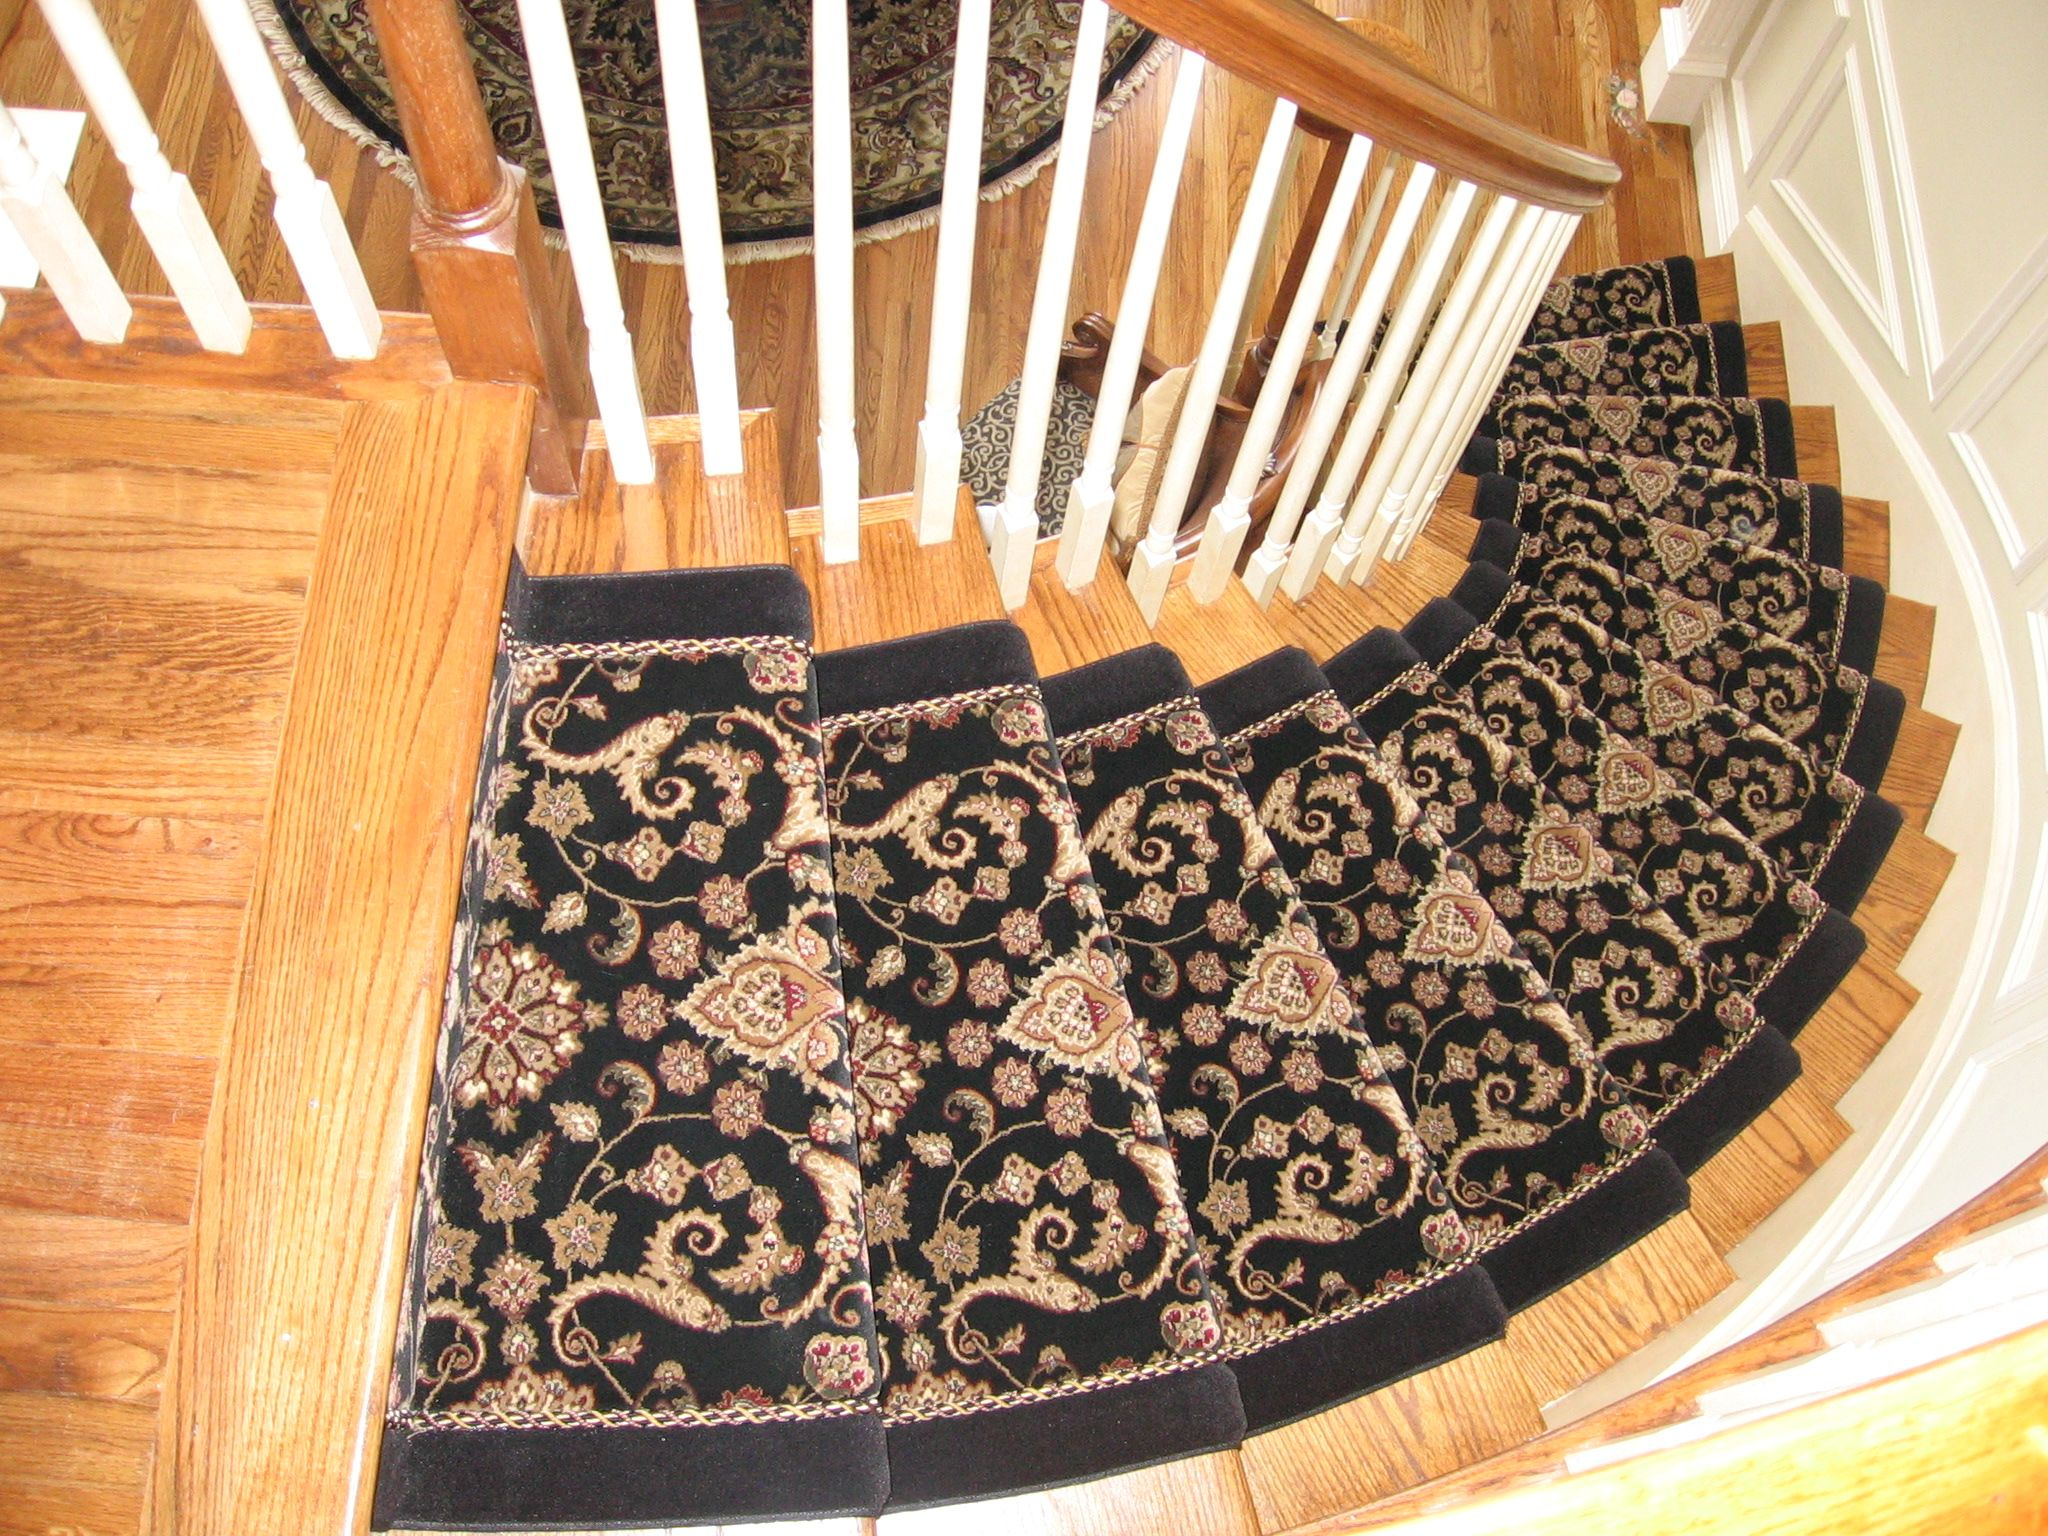 Custom-made stair runner, with rope inset, a proprietary process ...